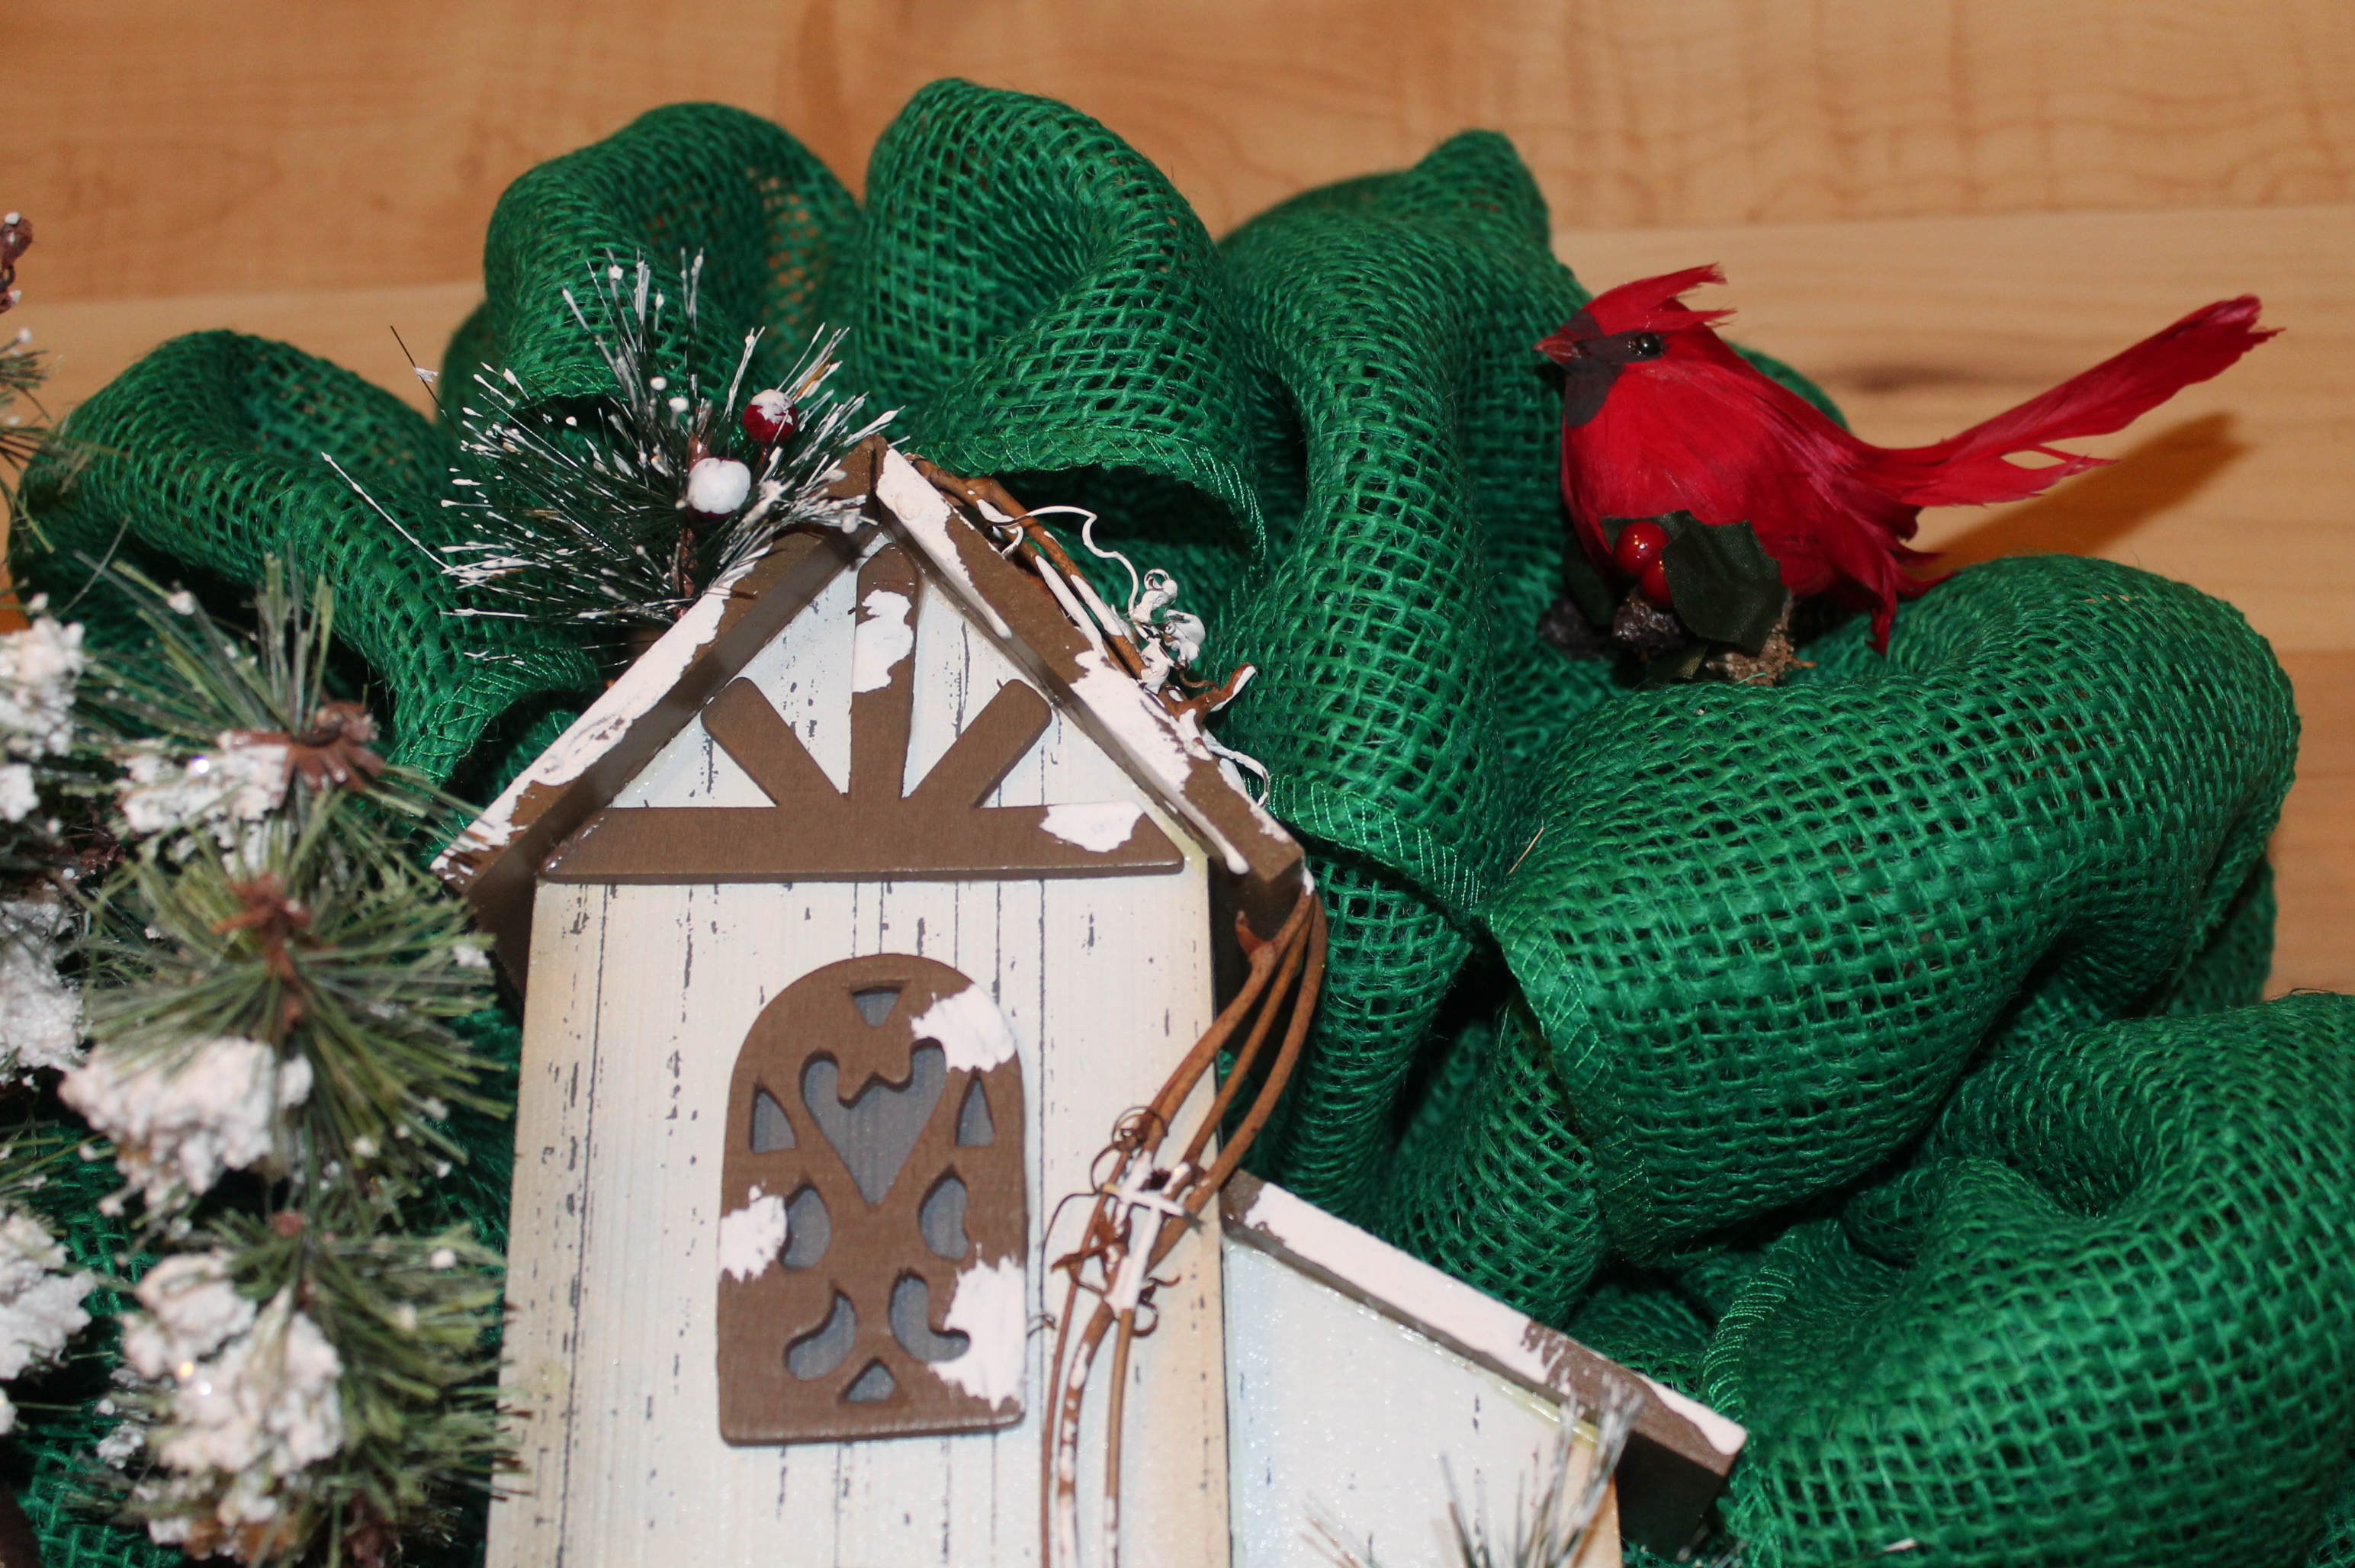 Burlap bird ornaments - Burlap Bird Ornaments 52